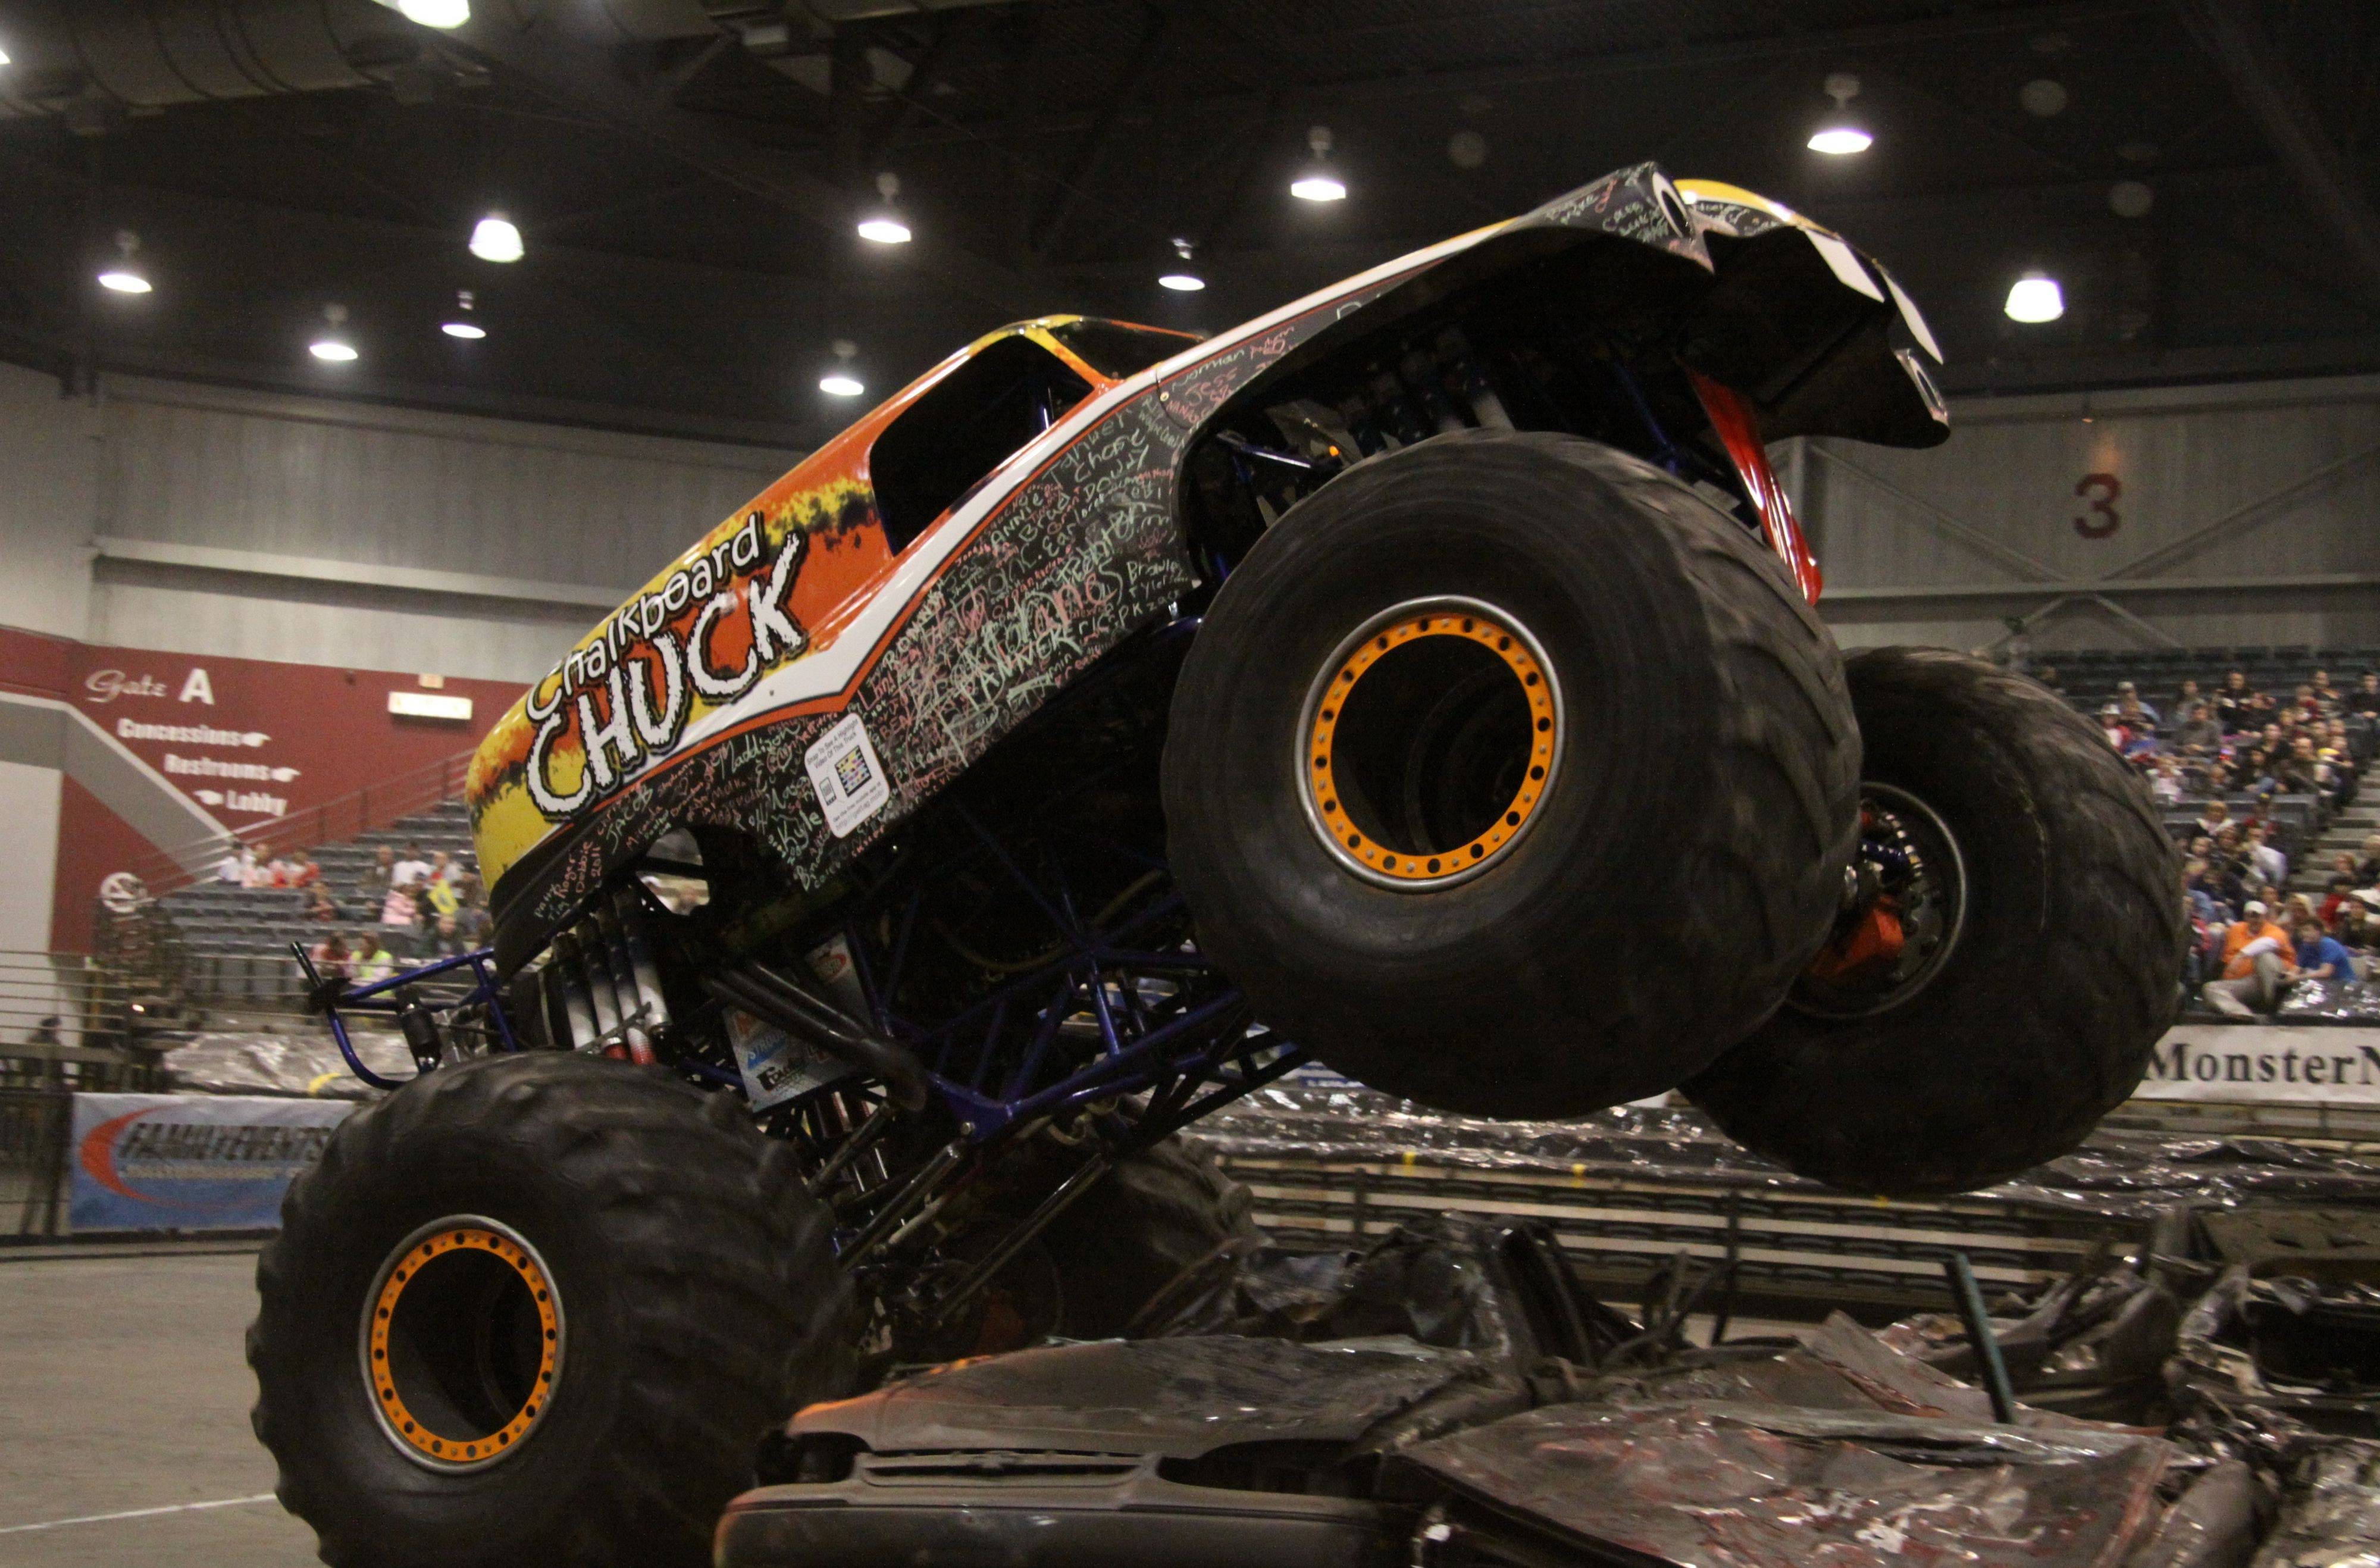 Monster Truck Nationals return to the Sears Centre Arena in Hoffman Estates.